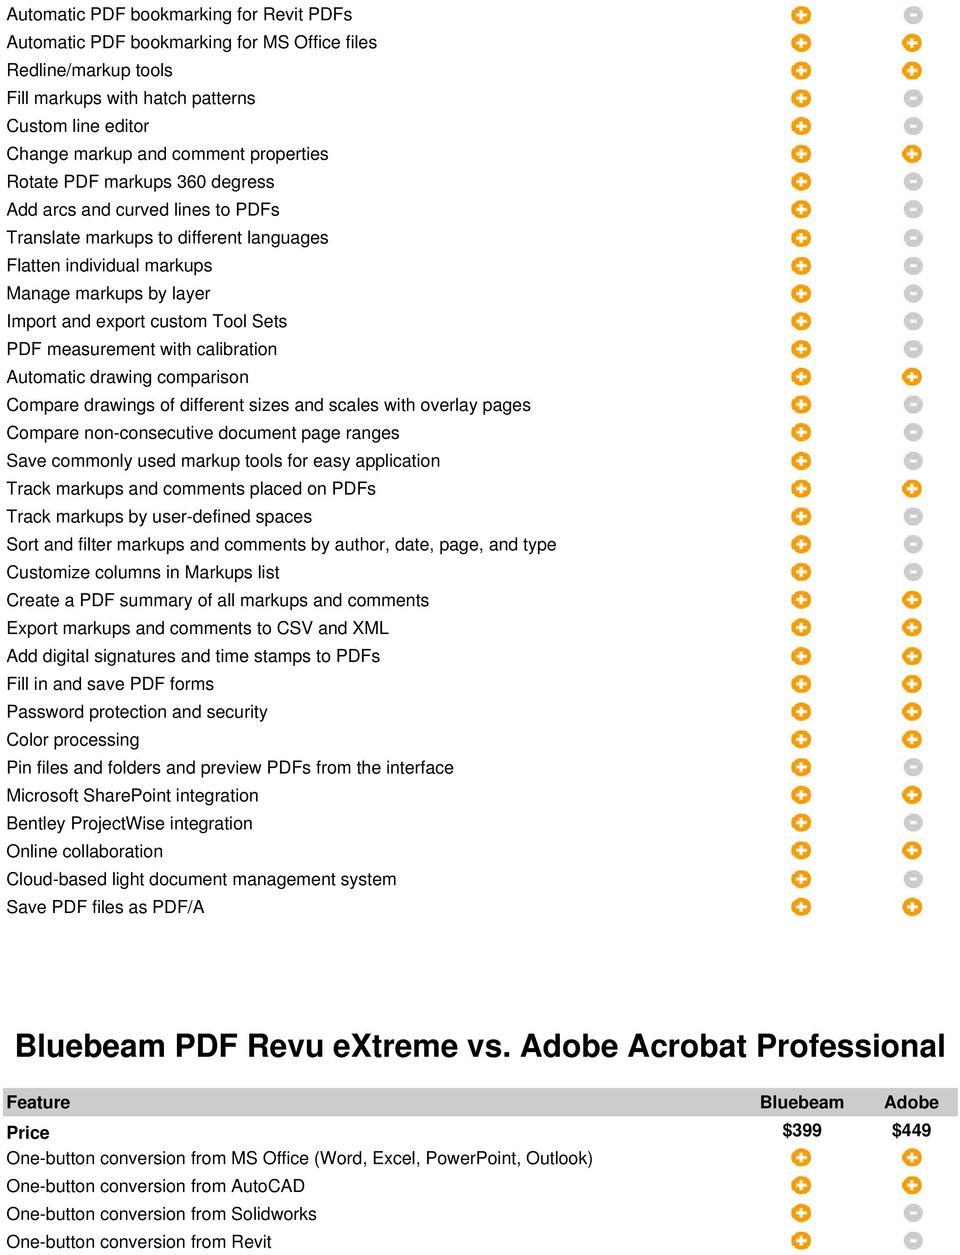 Bluebeam vs  Adobe  Bluebeam Vu vs  Adobe Reader X - PDF